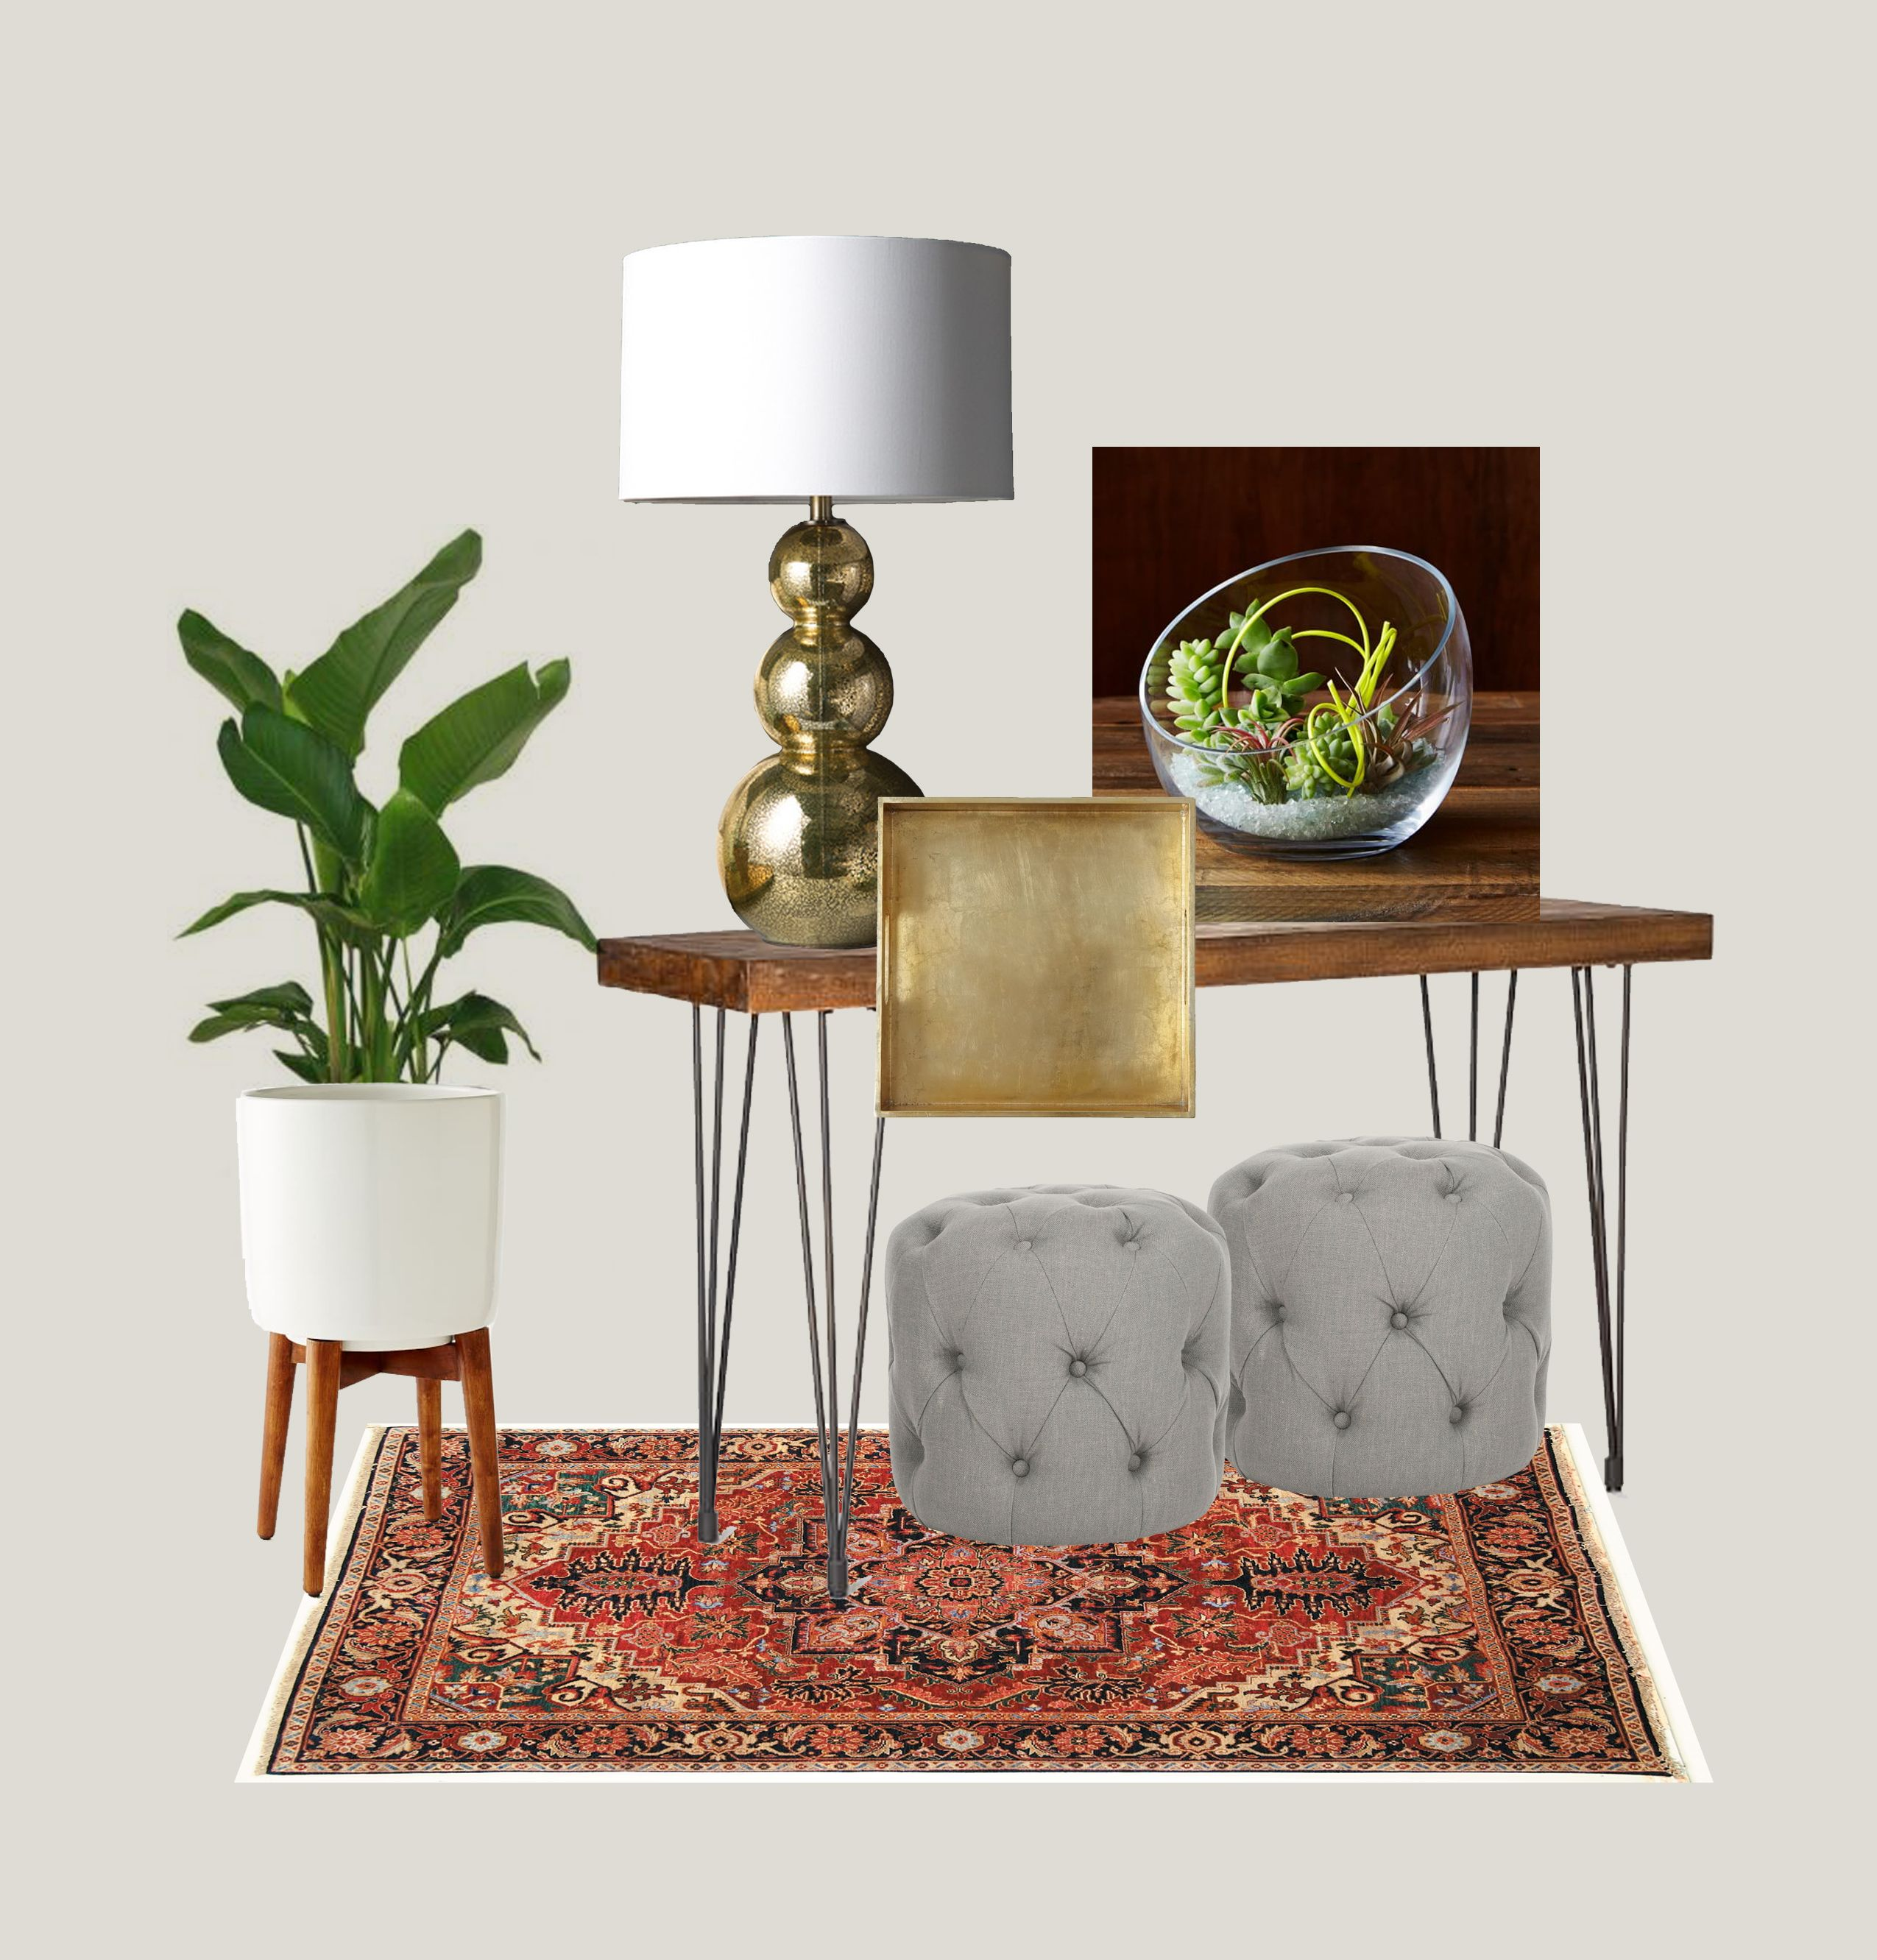 Hallway furniture for small space  Small space decorating  Console Table  Tufted Ottomans  Gallery